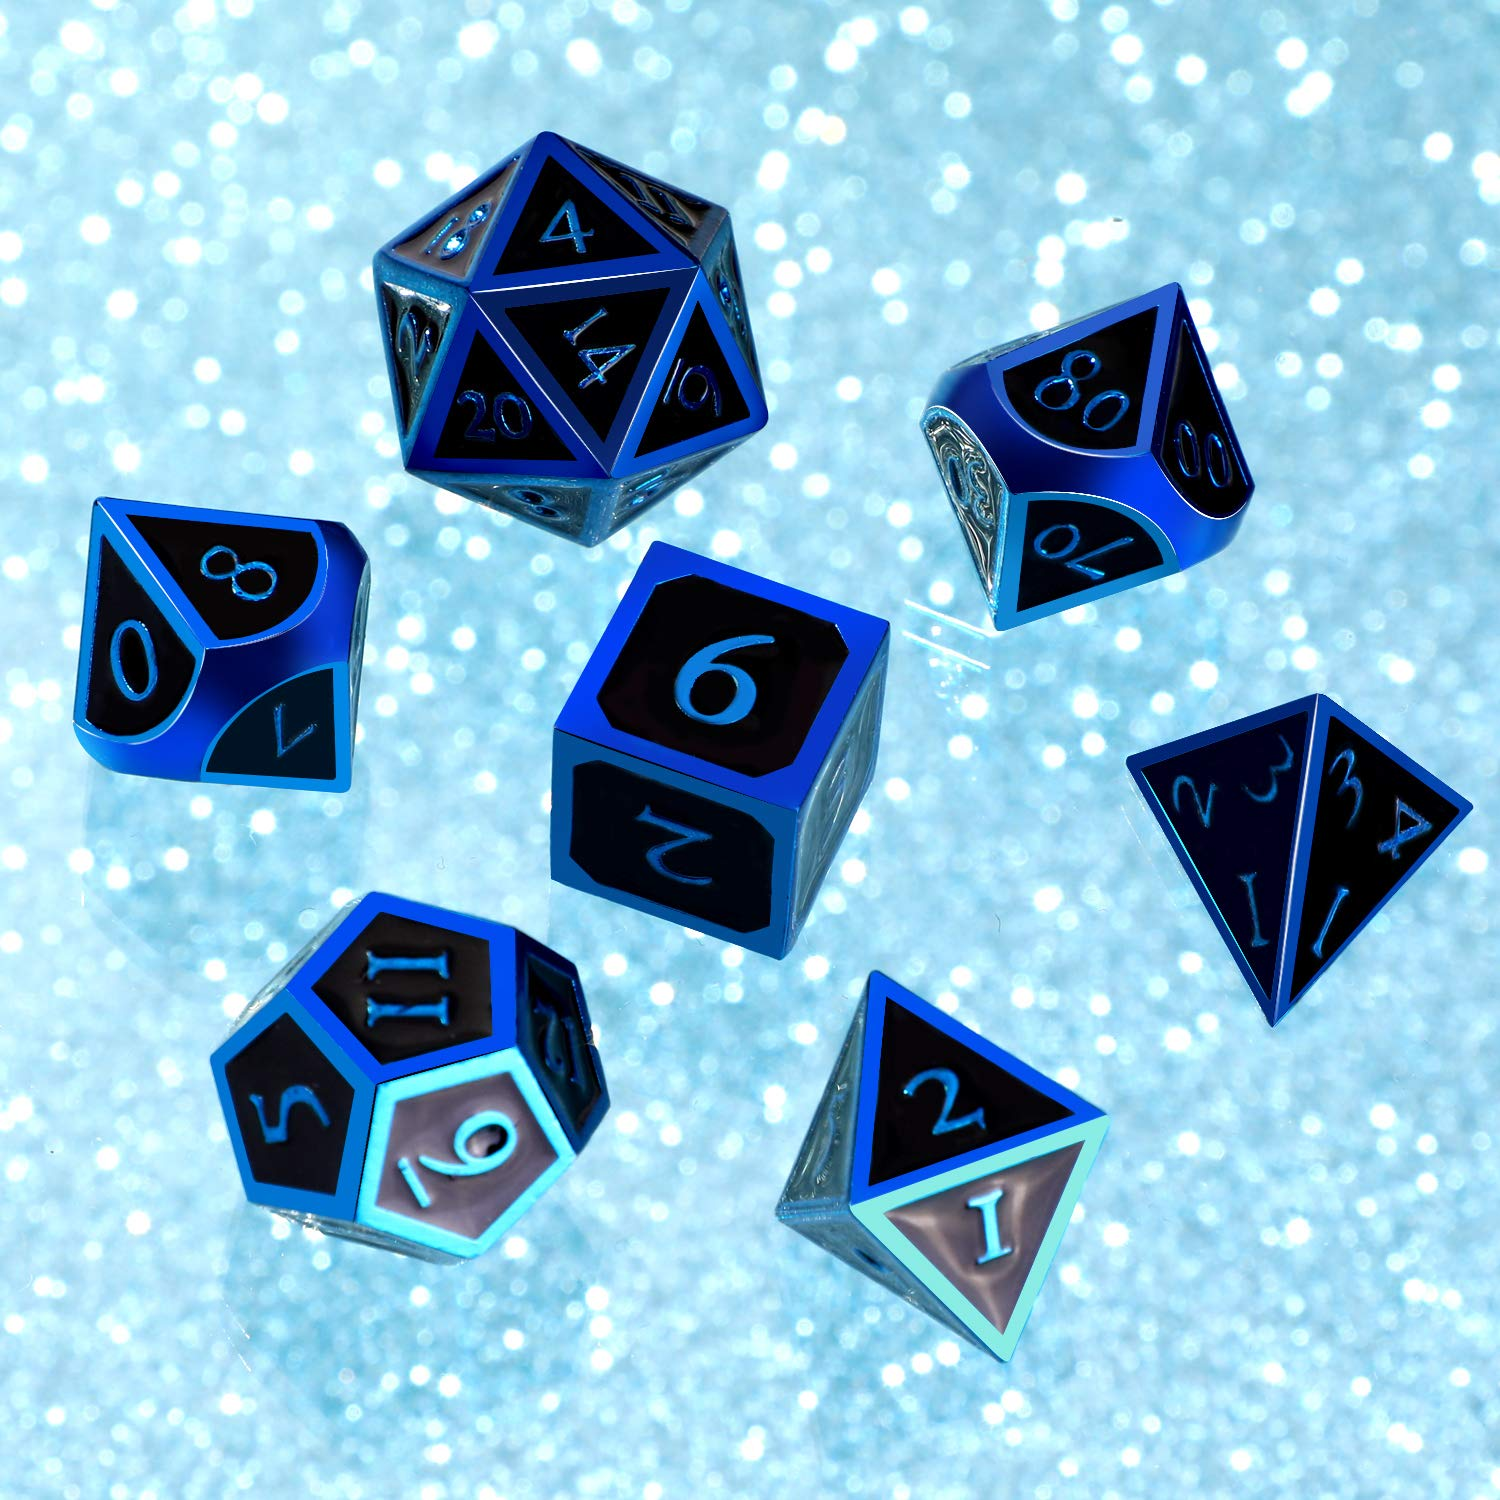 Hestya 7 Pieces Metal Dices Set DND Game Polyhedral Solid Metal D&D Dice Set with Storage Bag and Zinc Alloy with Enamel for Role Playing Game Dungeons and Dragons (Blue Edge Black) by Hestya (Image #6)